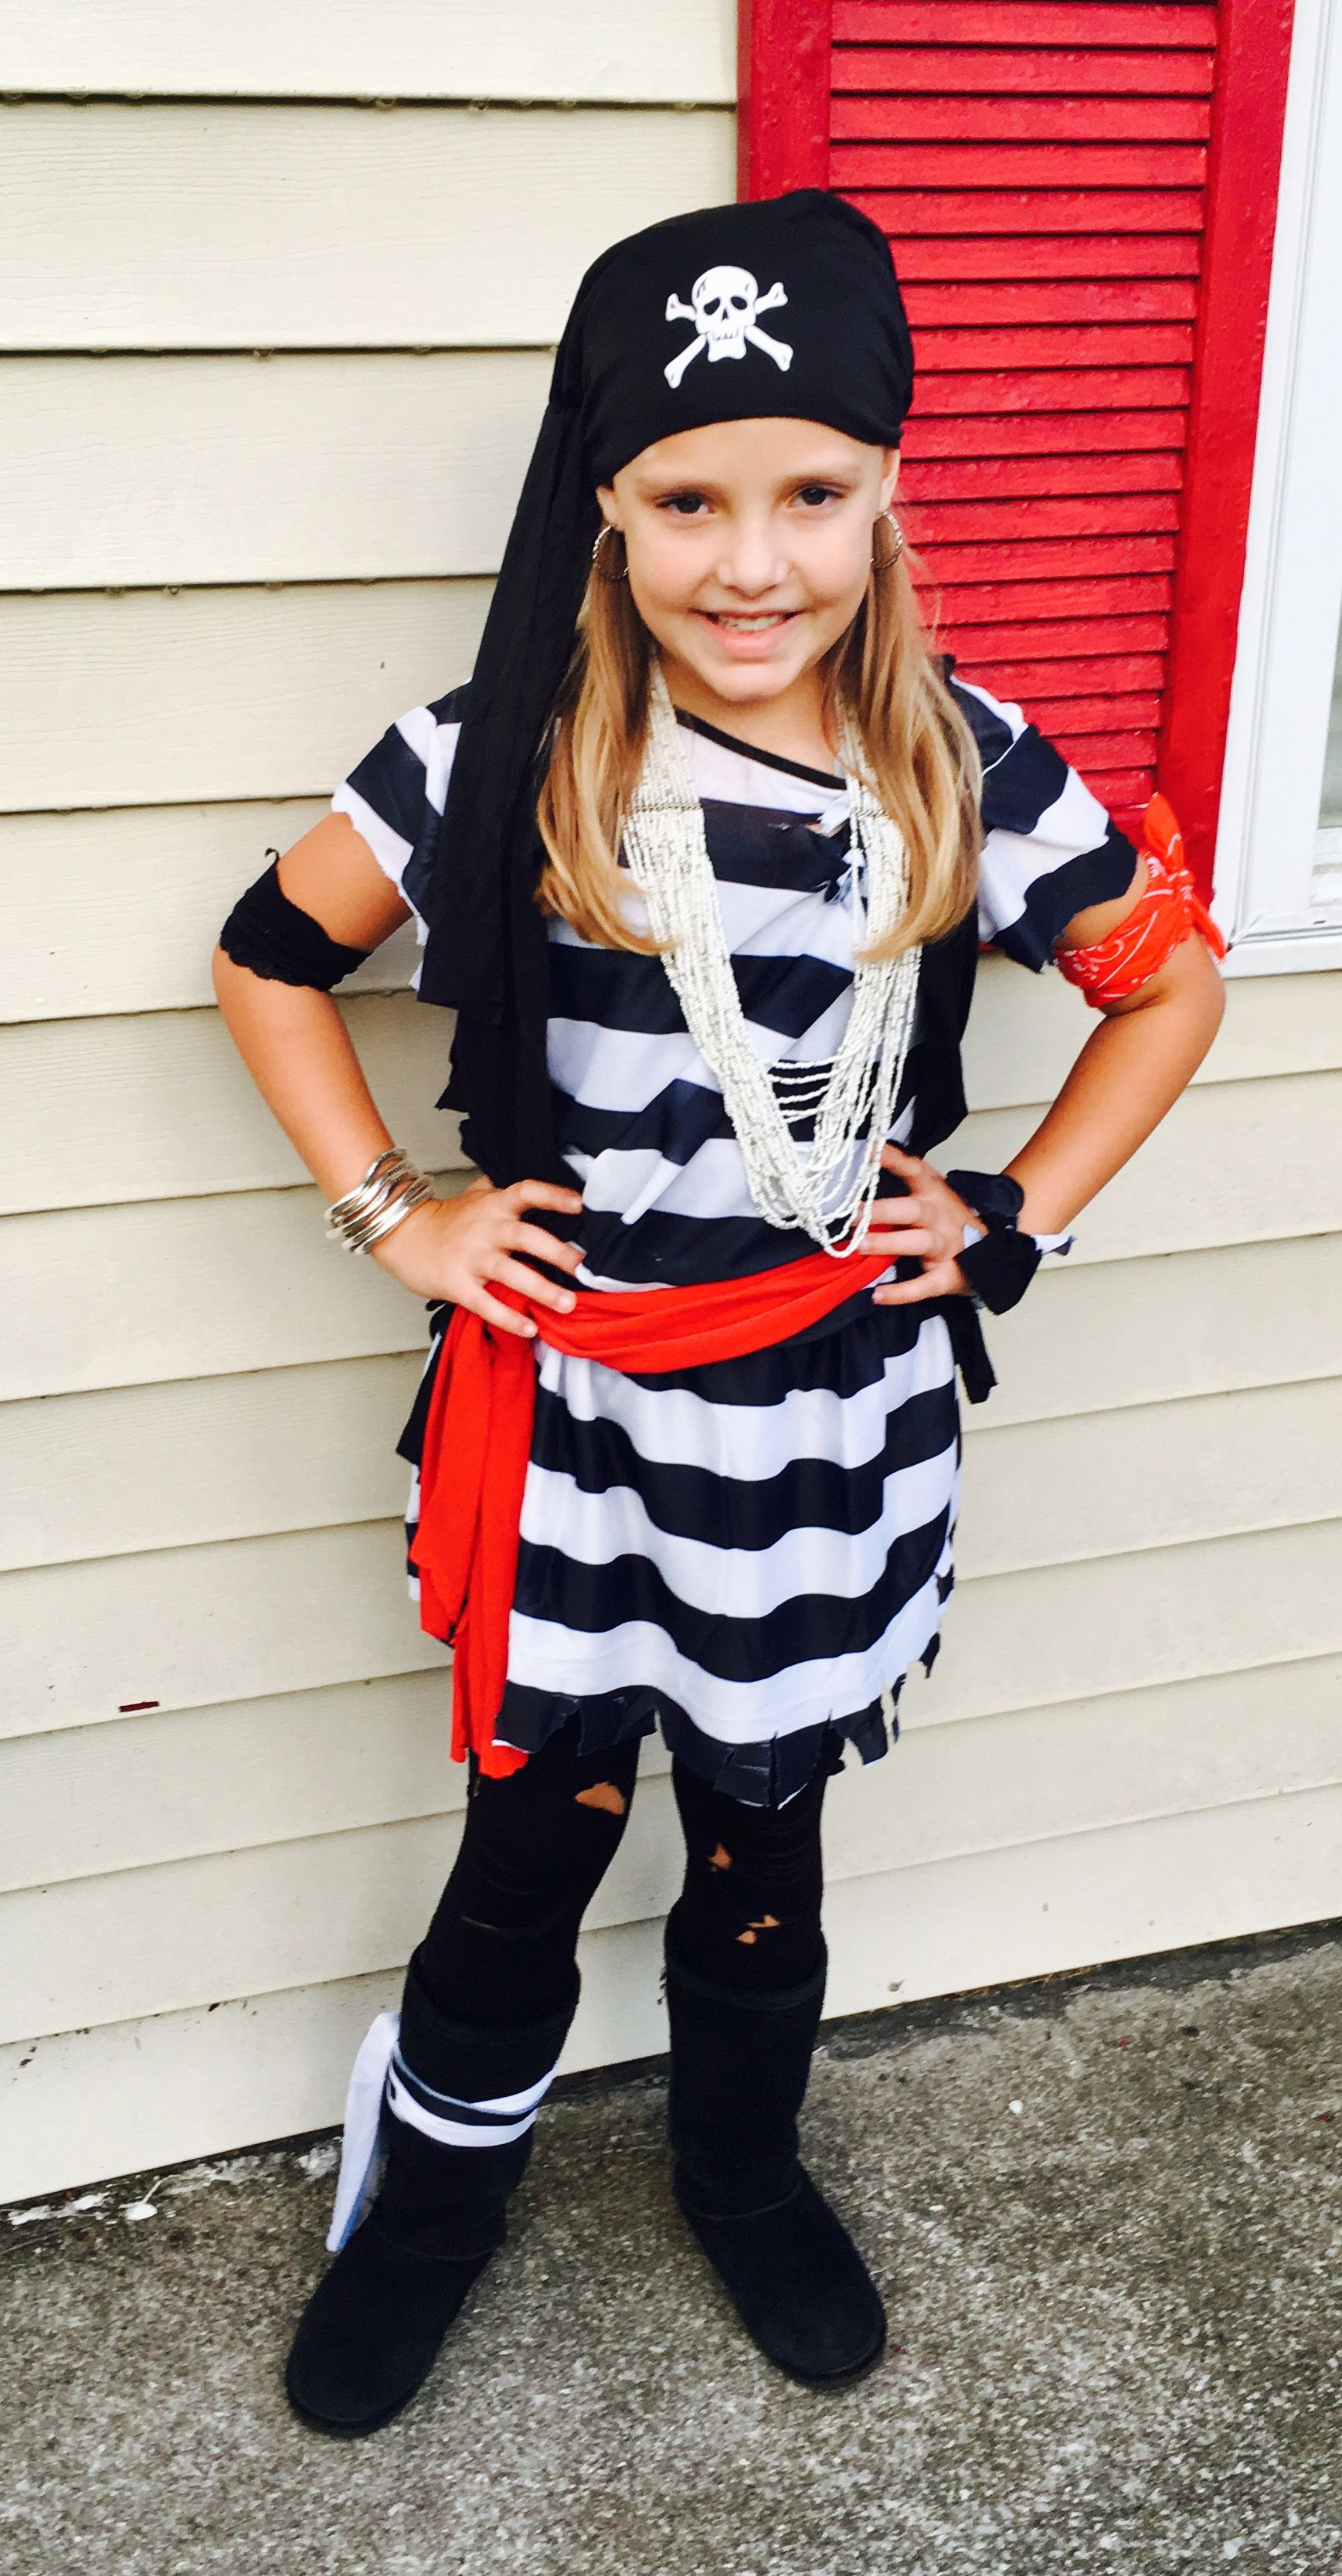 Best ideas about Easy DIY Pirate Costumes . Save or Pin Easy girl s pirate costume made from cheap adult size Now.